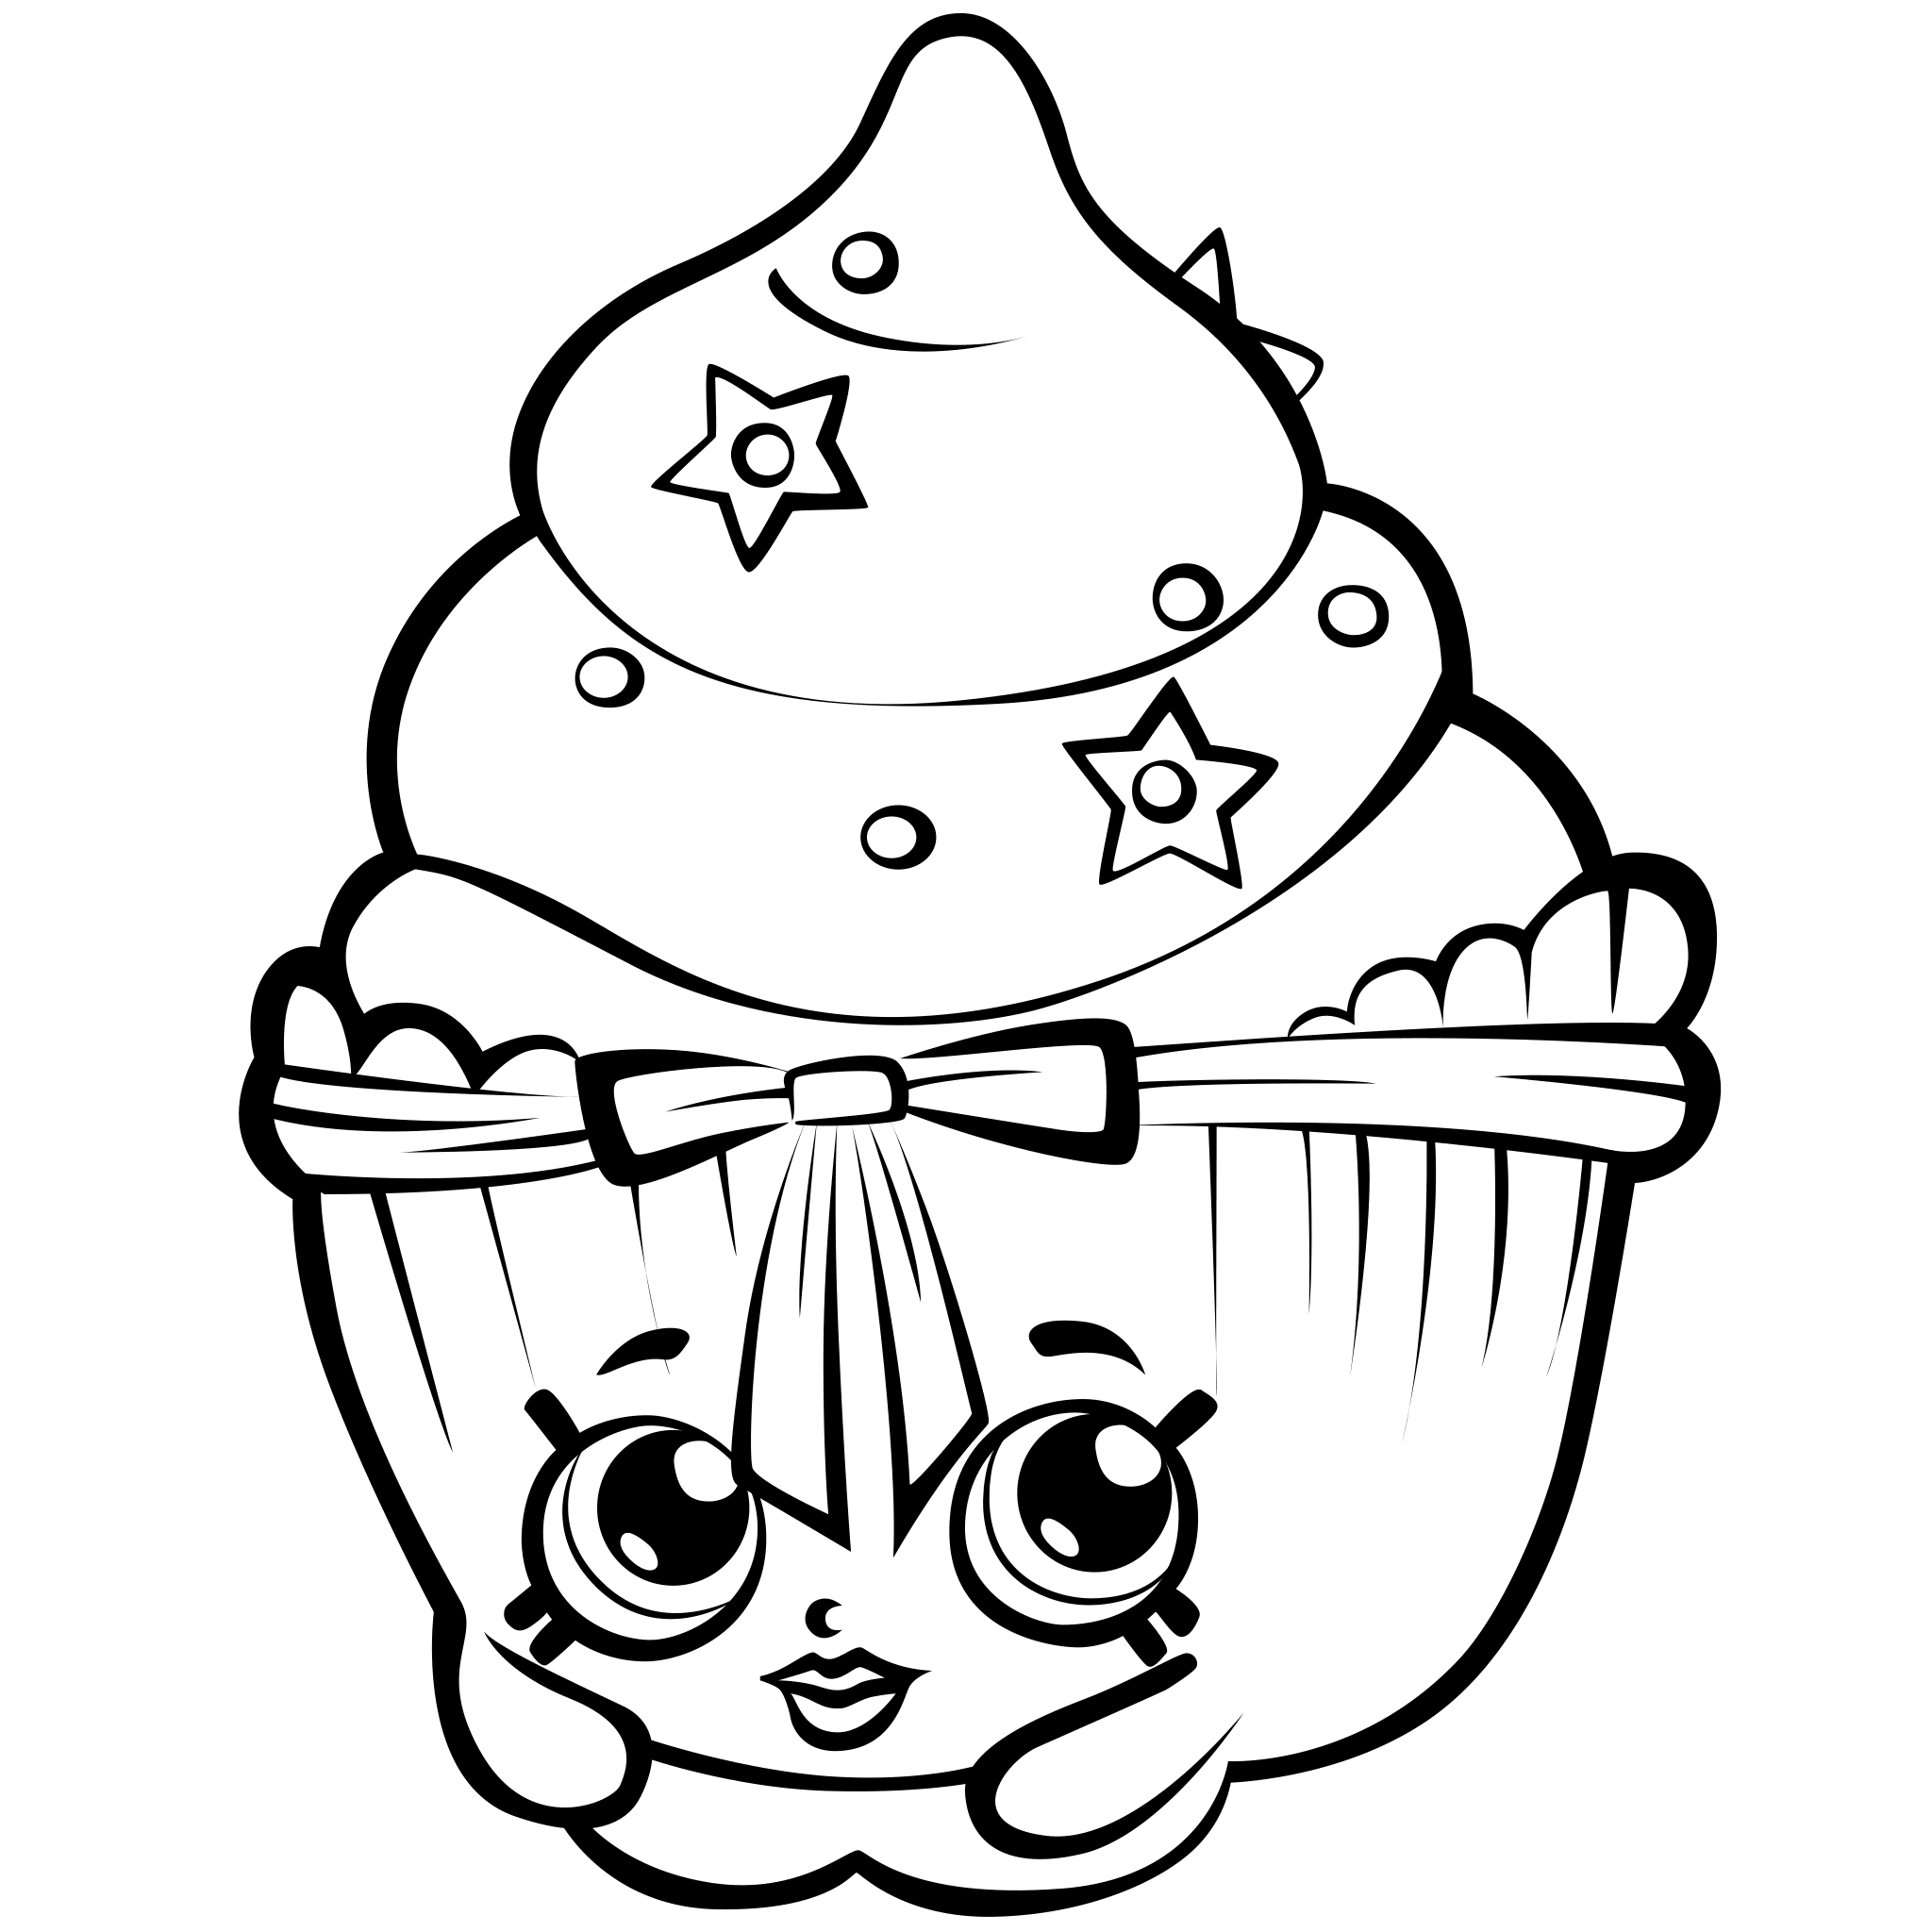 2048x2048 Cool Design Shopkins Coloring Pages To Print Season Cupcake